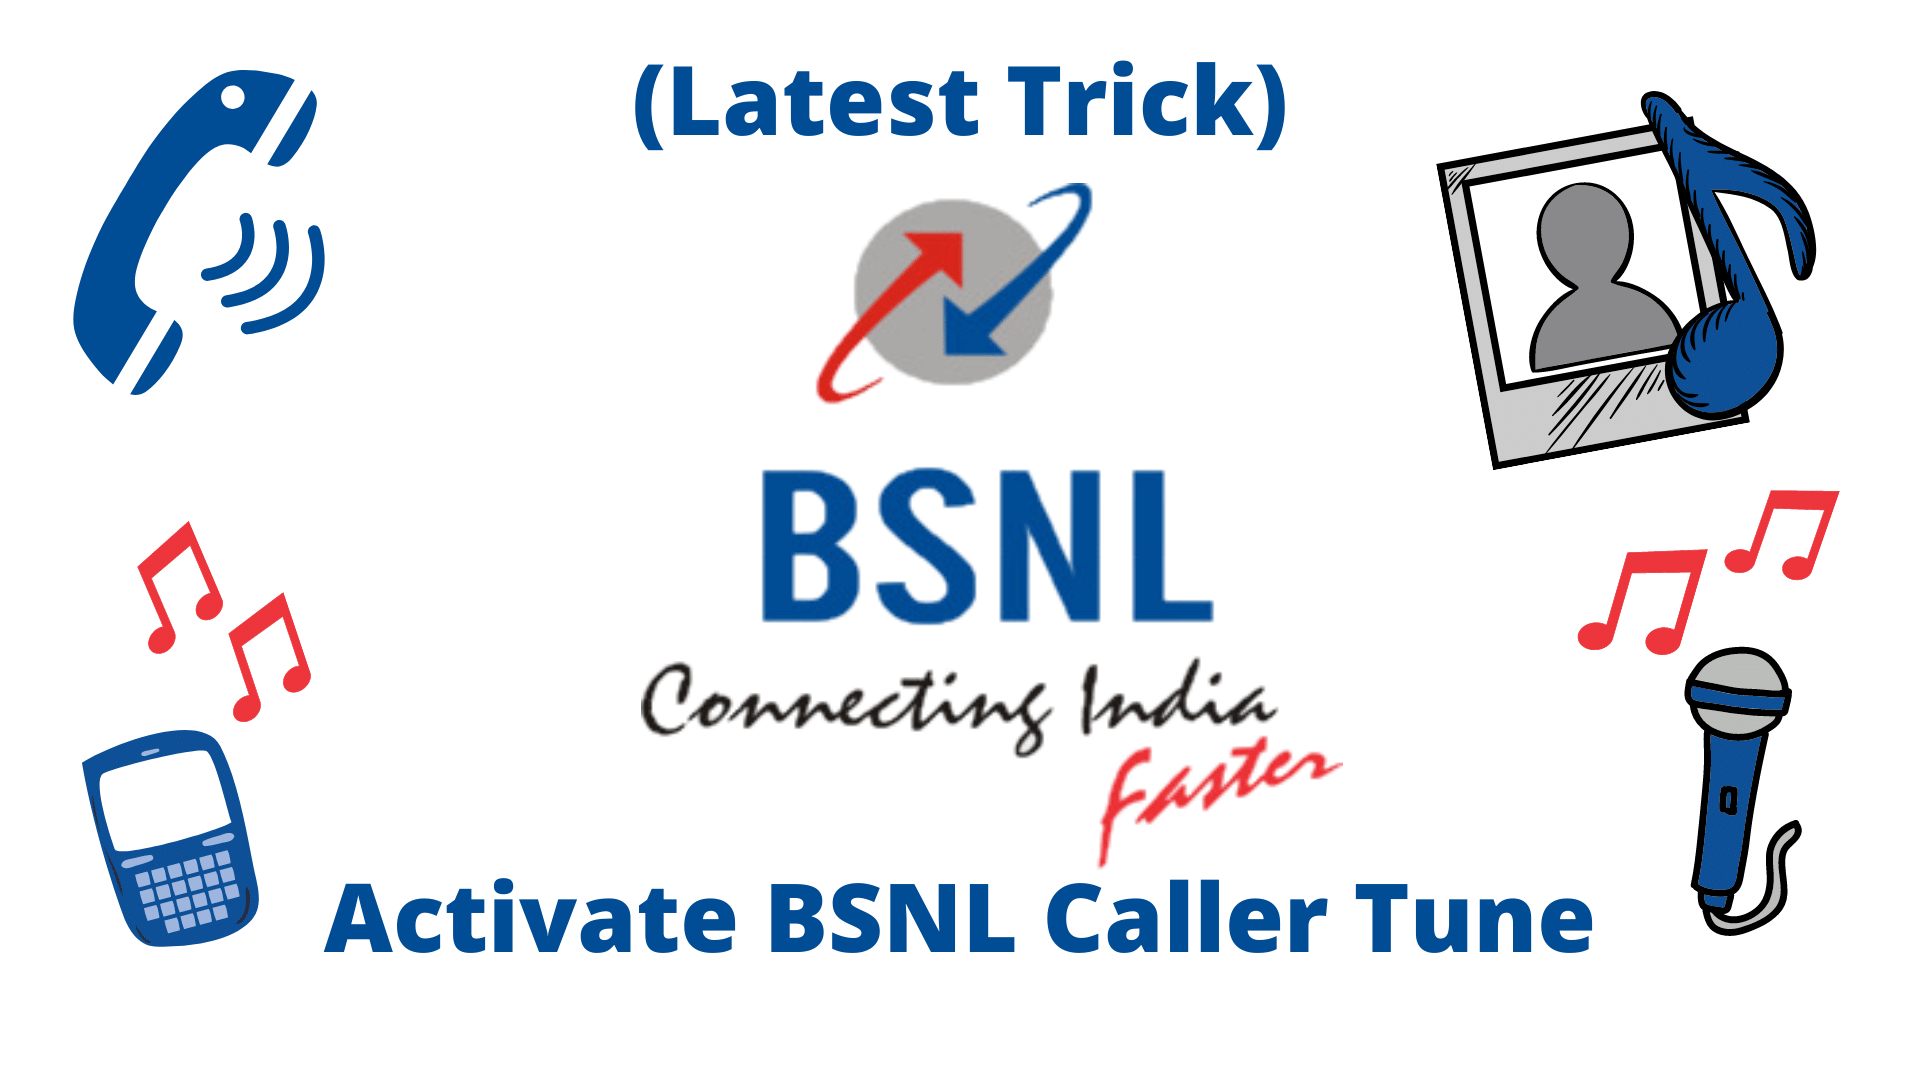 Activate and Deactivate BSNL Caller Tune Service